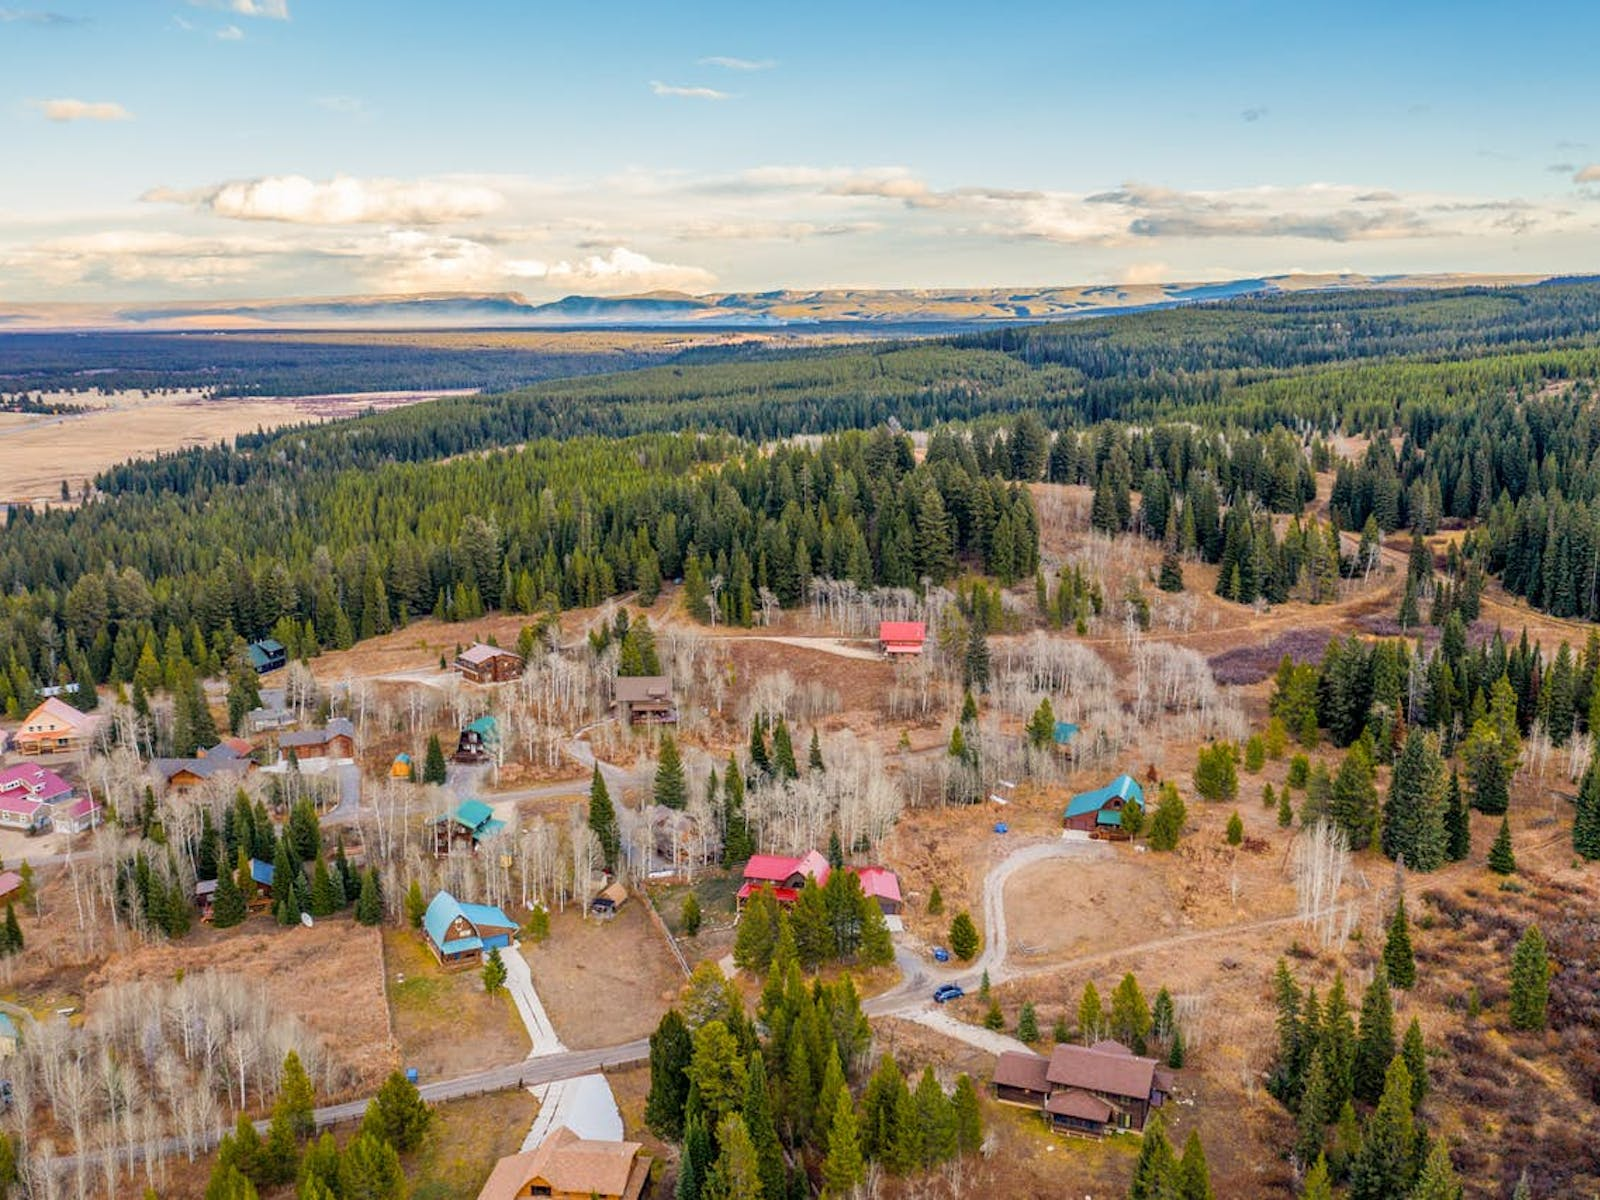 Aerial view of Yellowstone National Park landscape and cabins